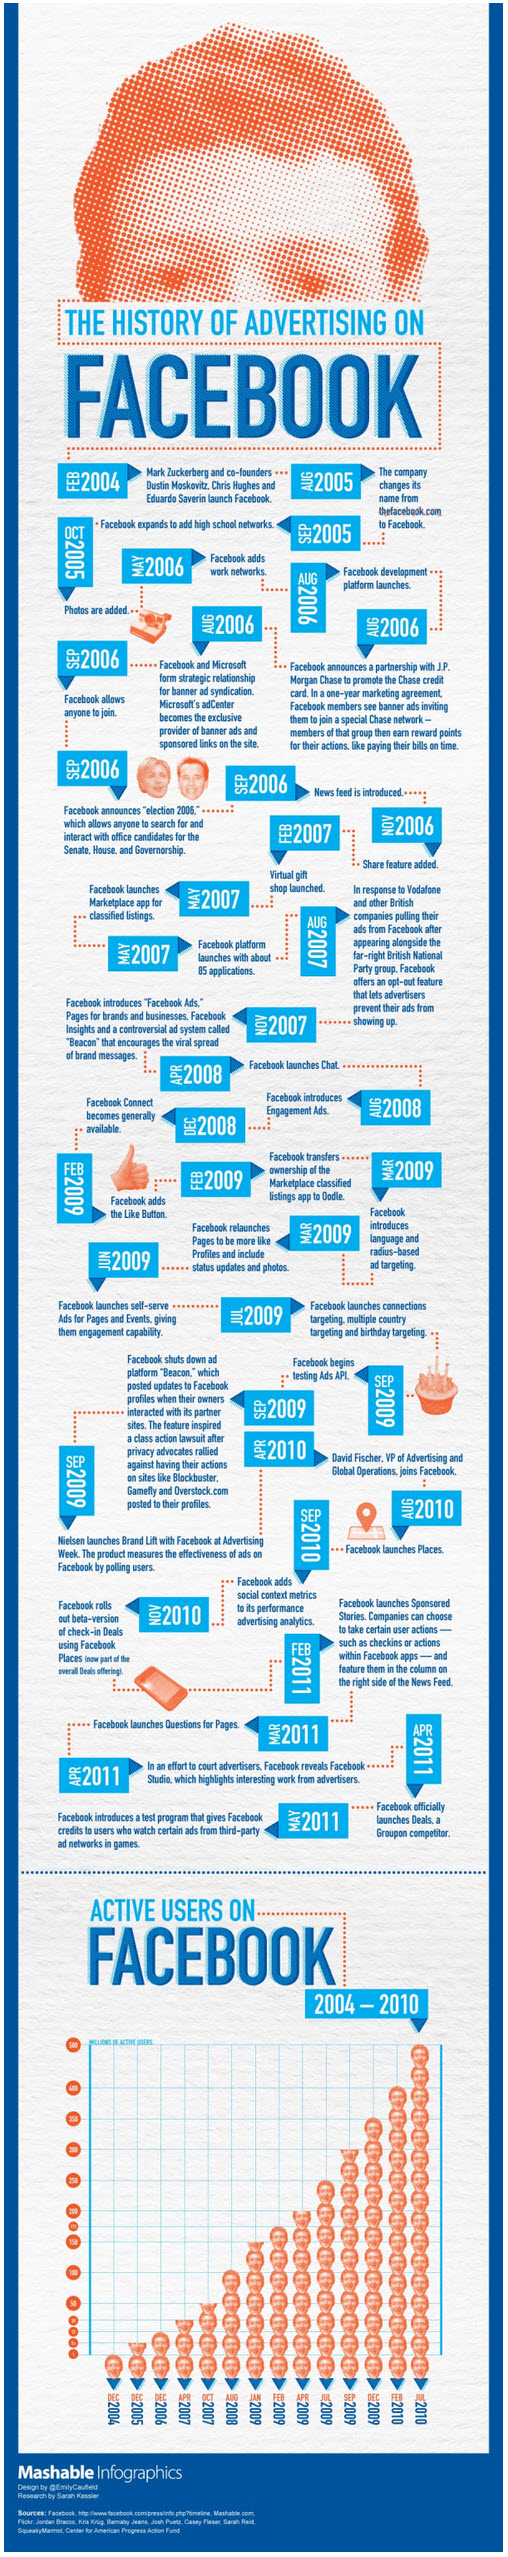 The History of Advertising on Facebook Infographic